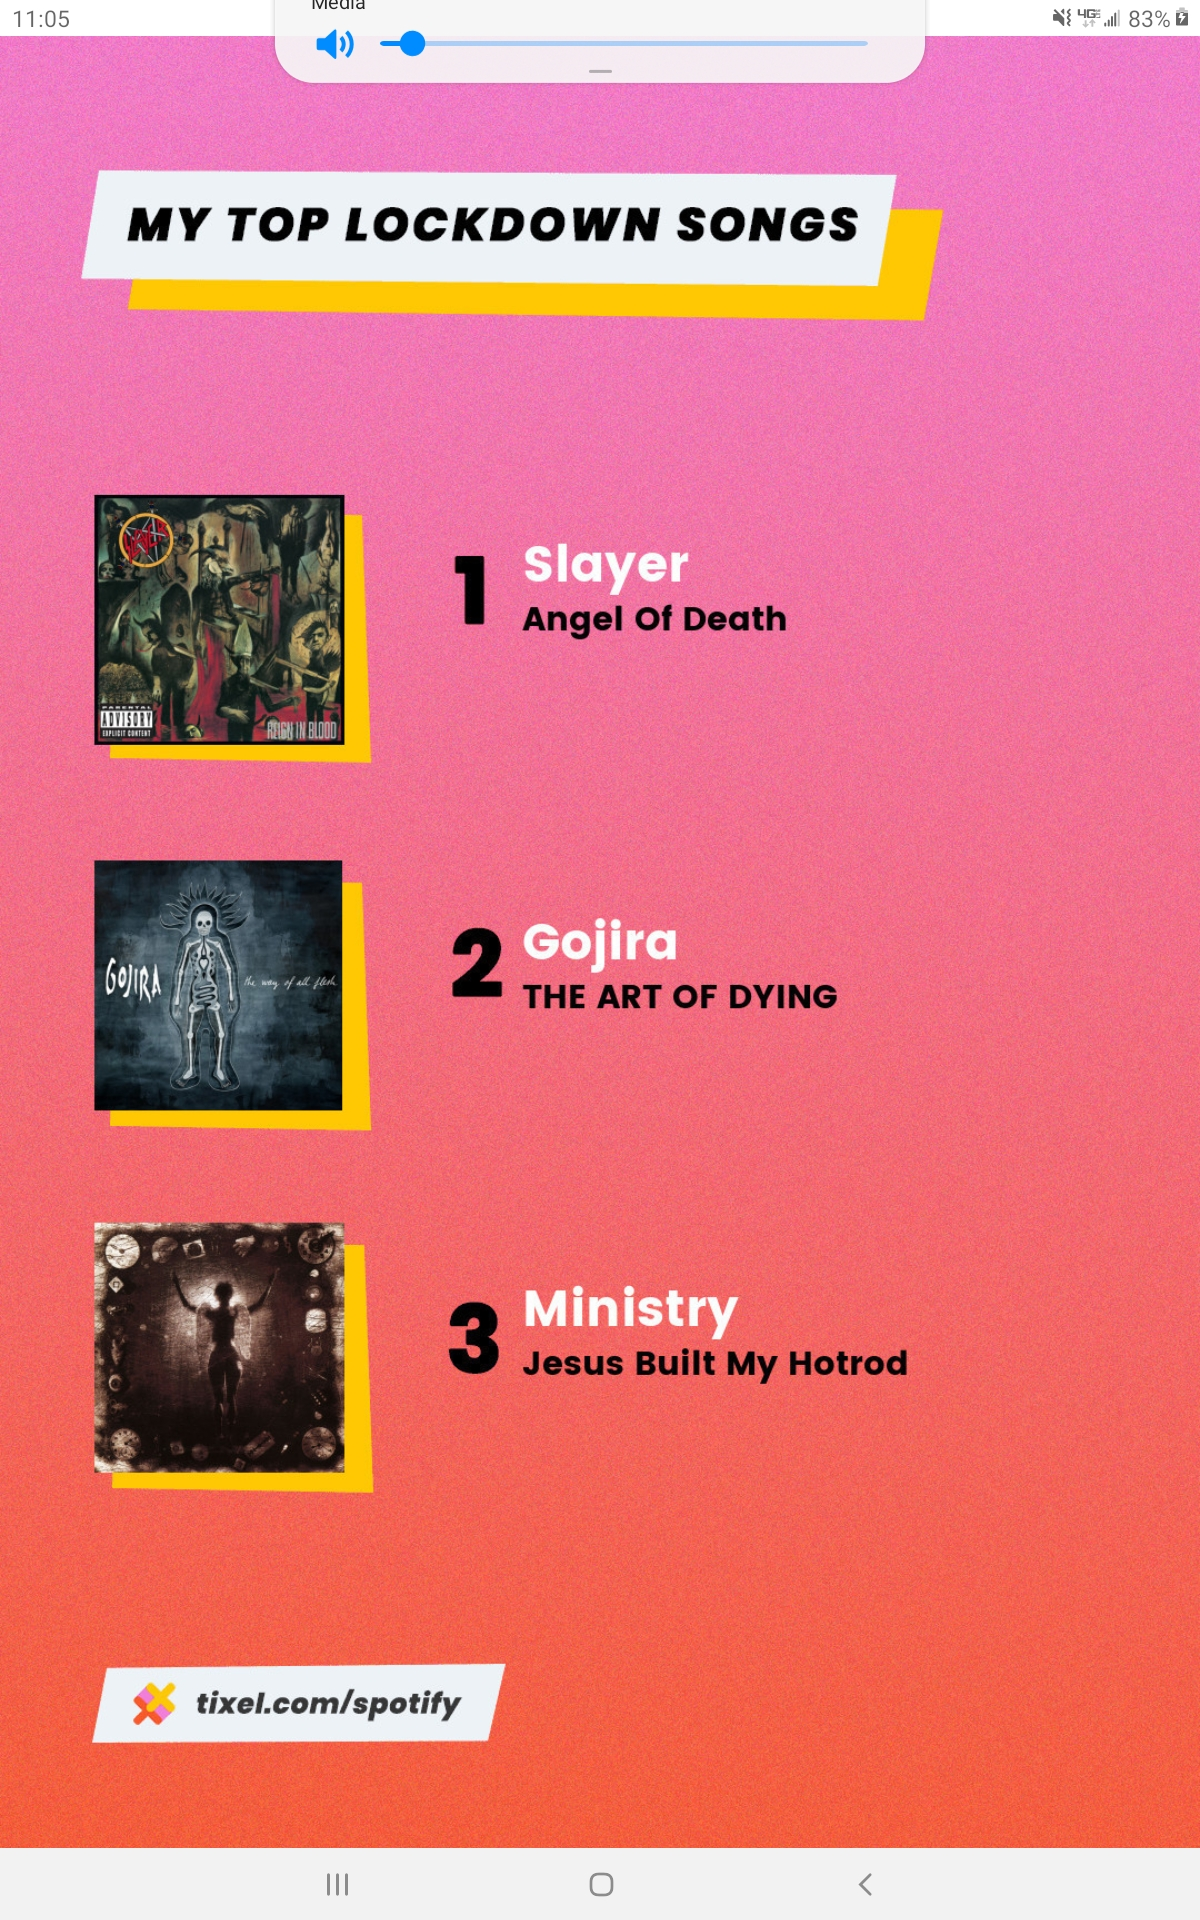 Its Log Song : Number, Listened, Spotify, During, Lockdown, Dying, Slayer, Ministry., Easy,, Tixel.com/spotify, Account.